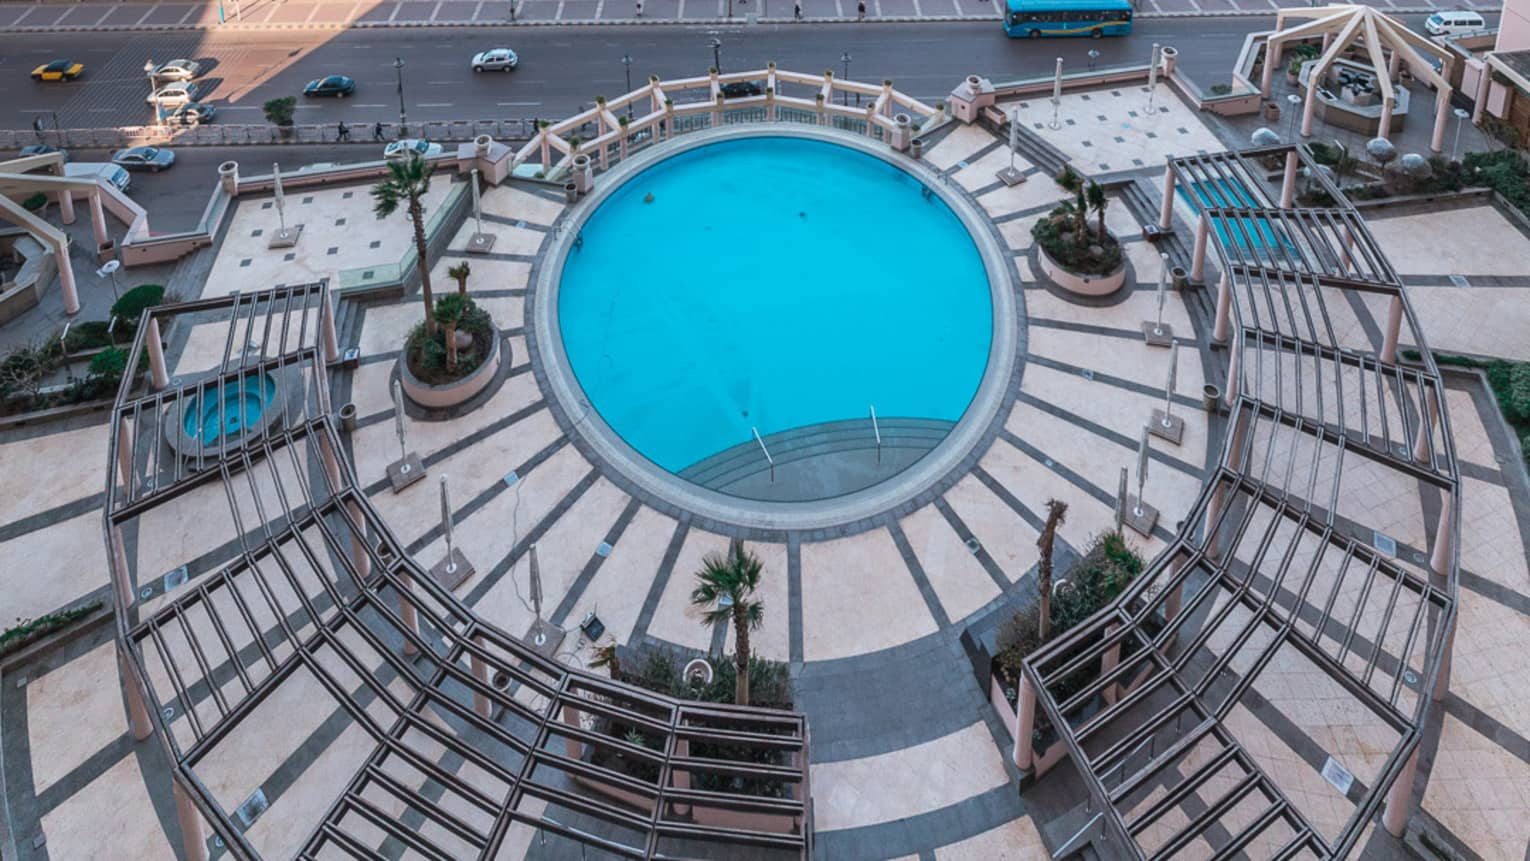 A bird's eye view of the pool at four seasons hotel alexandria